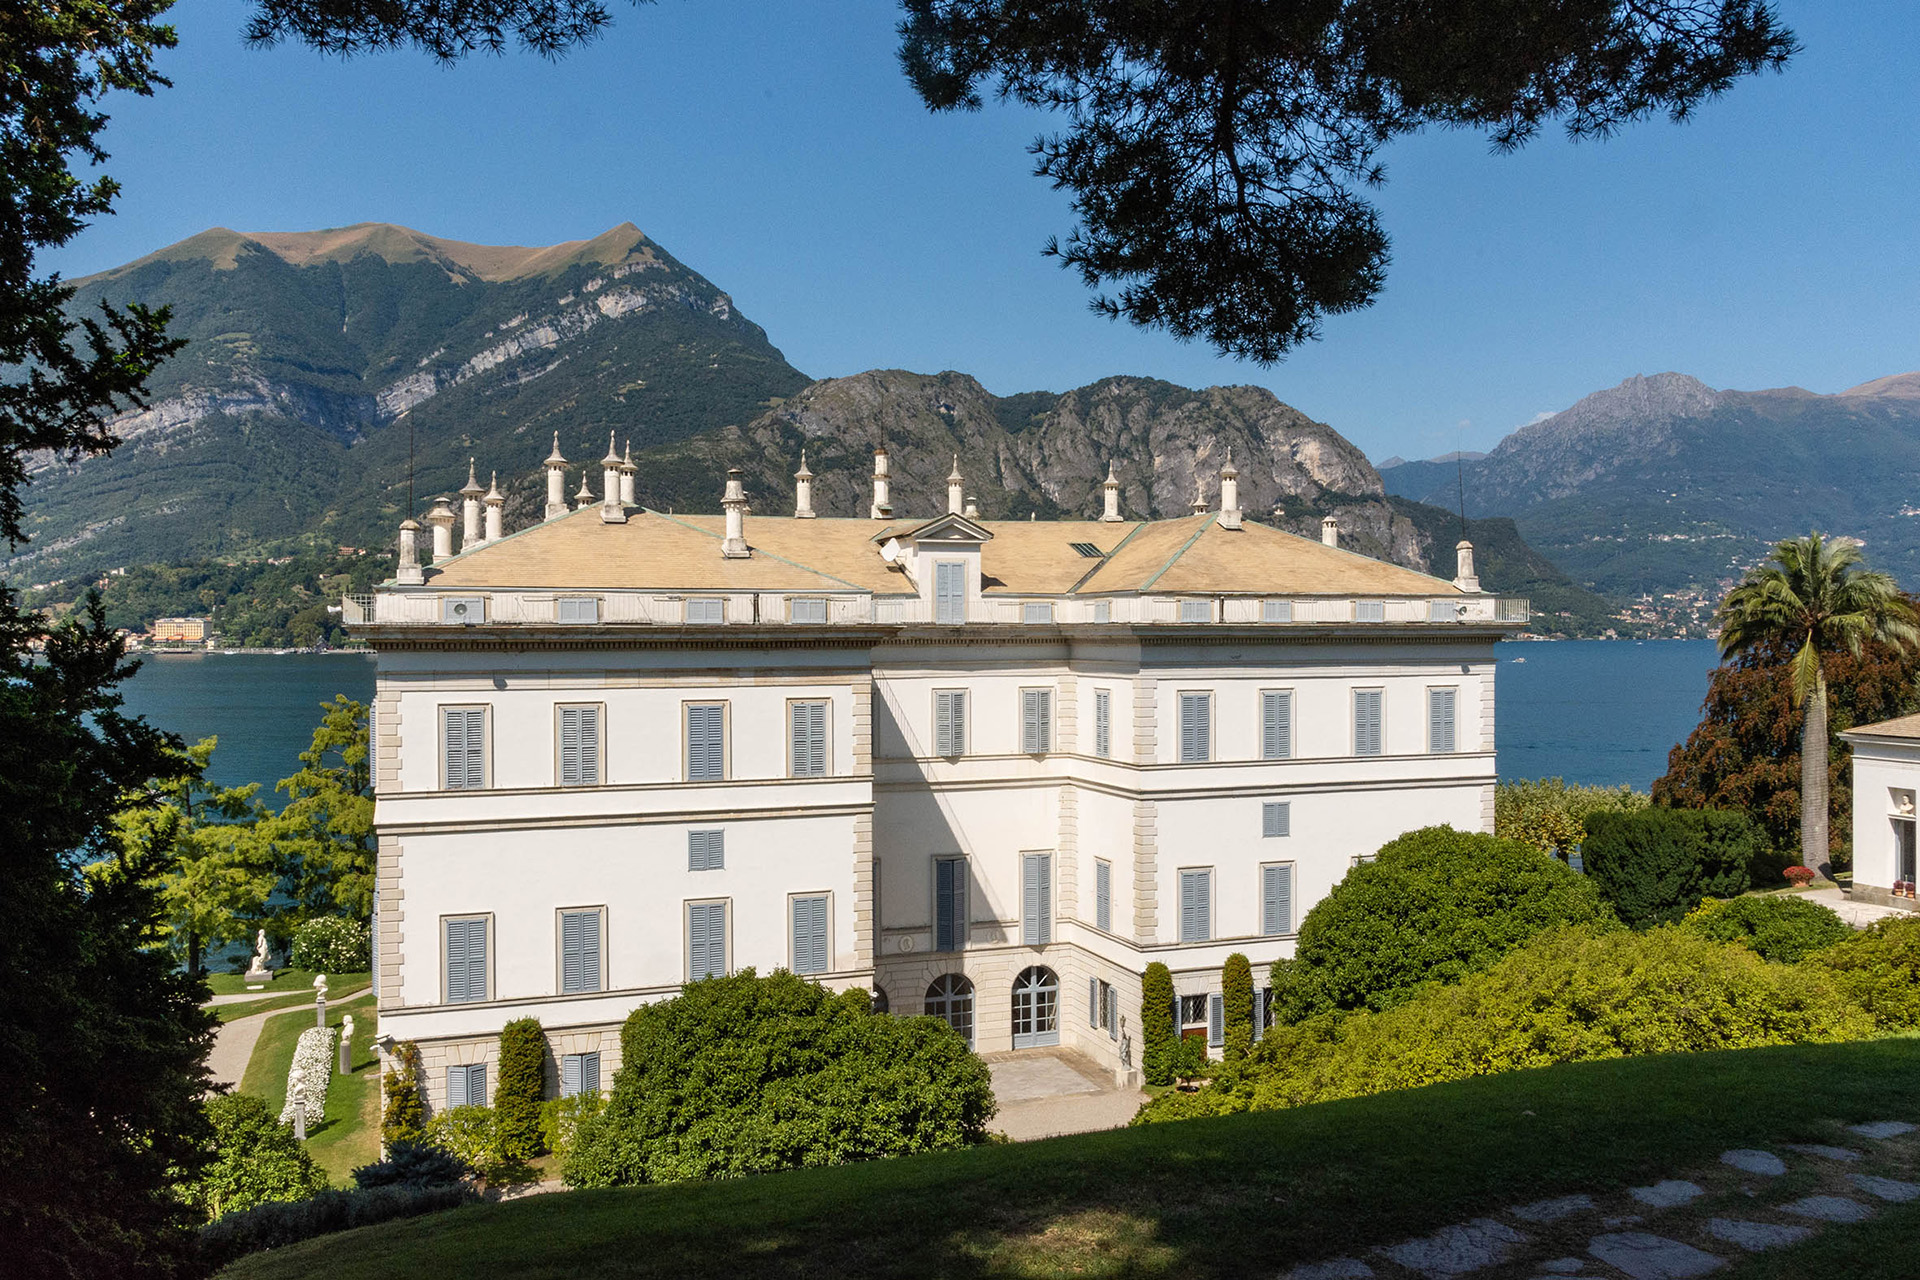 The Villa Melzi, Bellagio, former home of Ludovico Melzi d'Eril and aristocrat and benefactor to the region